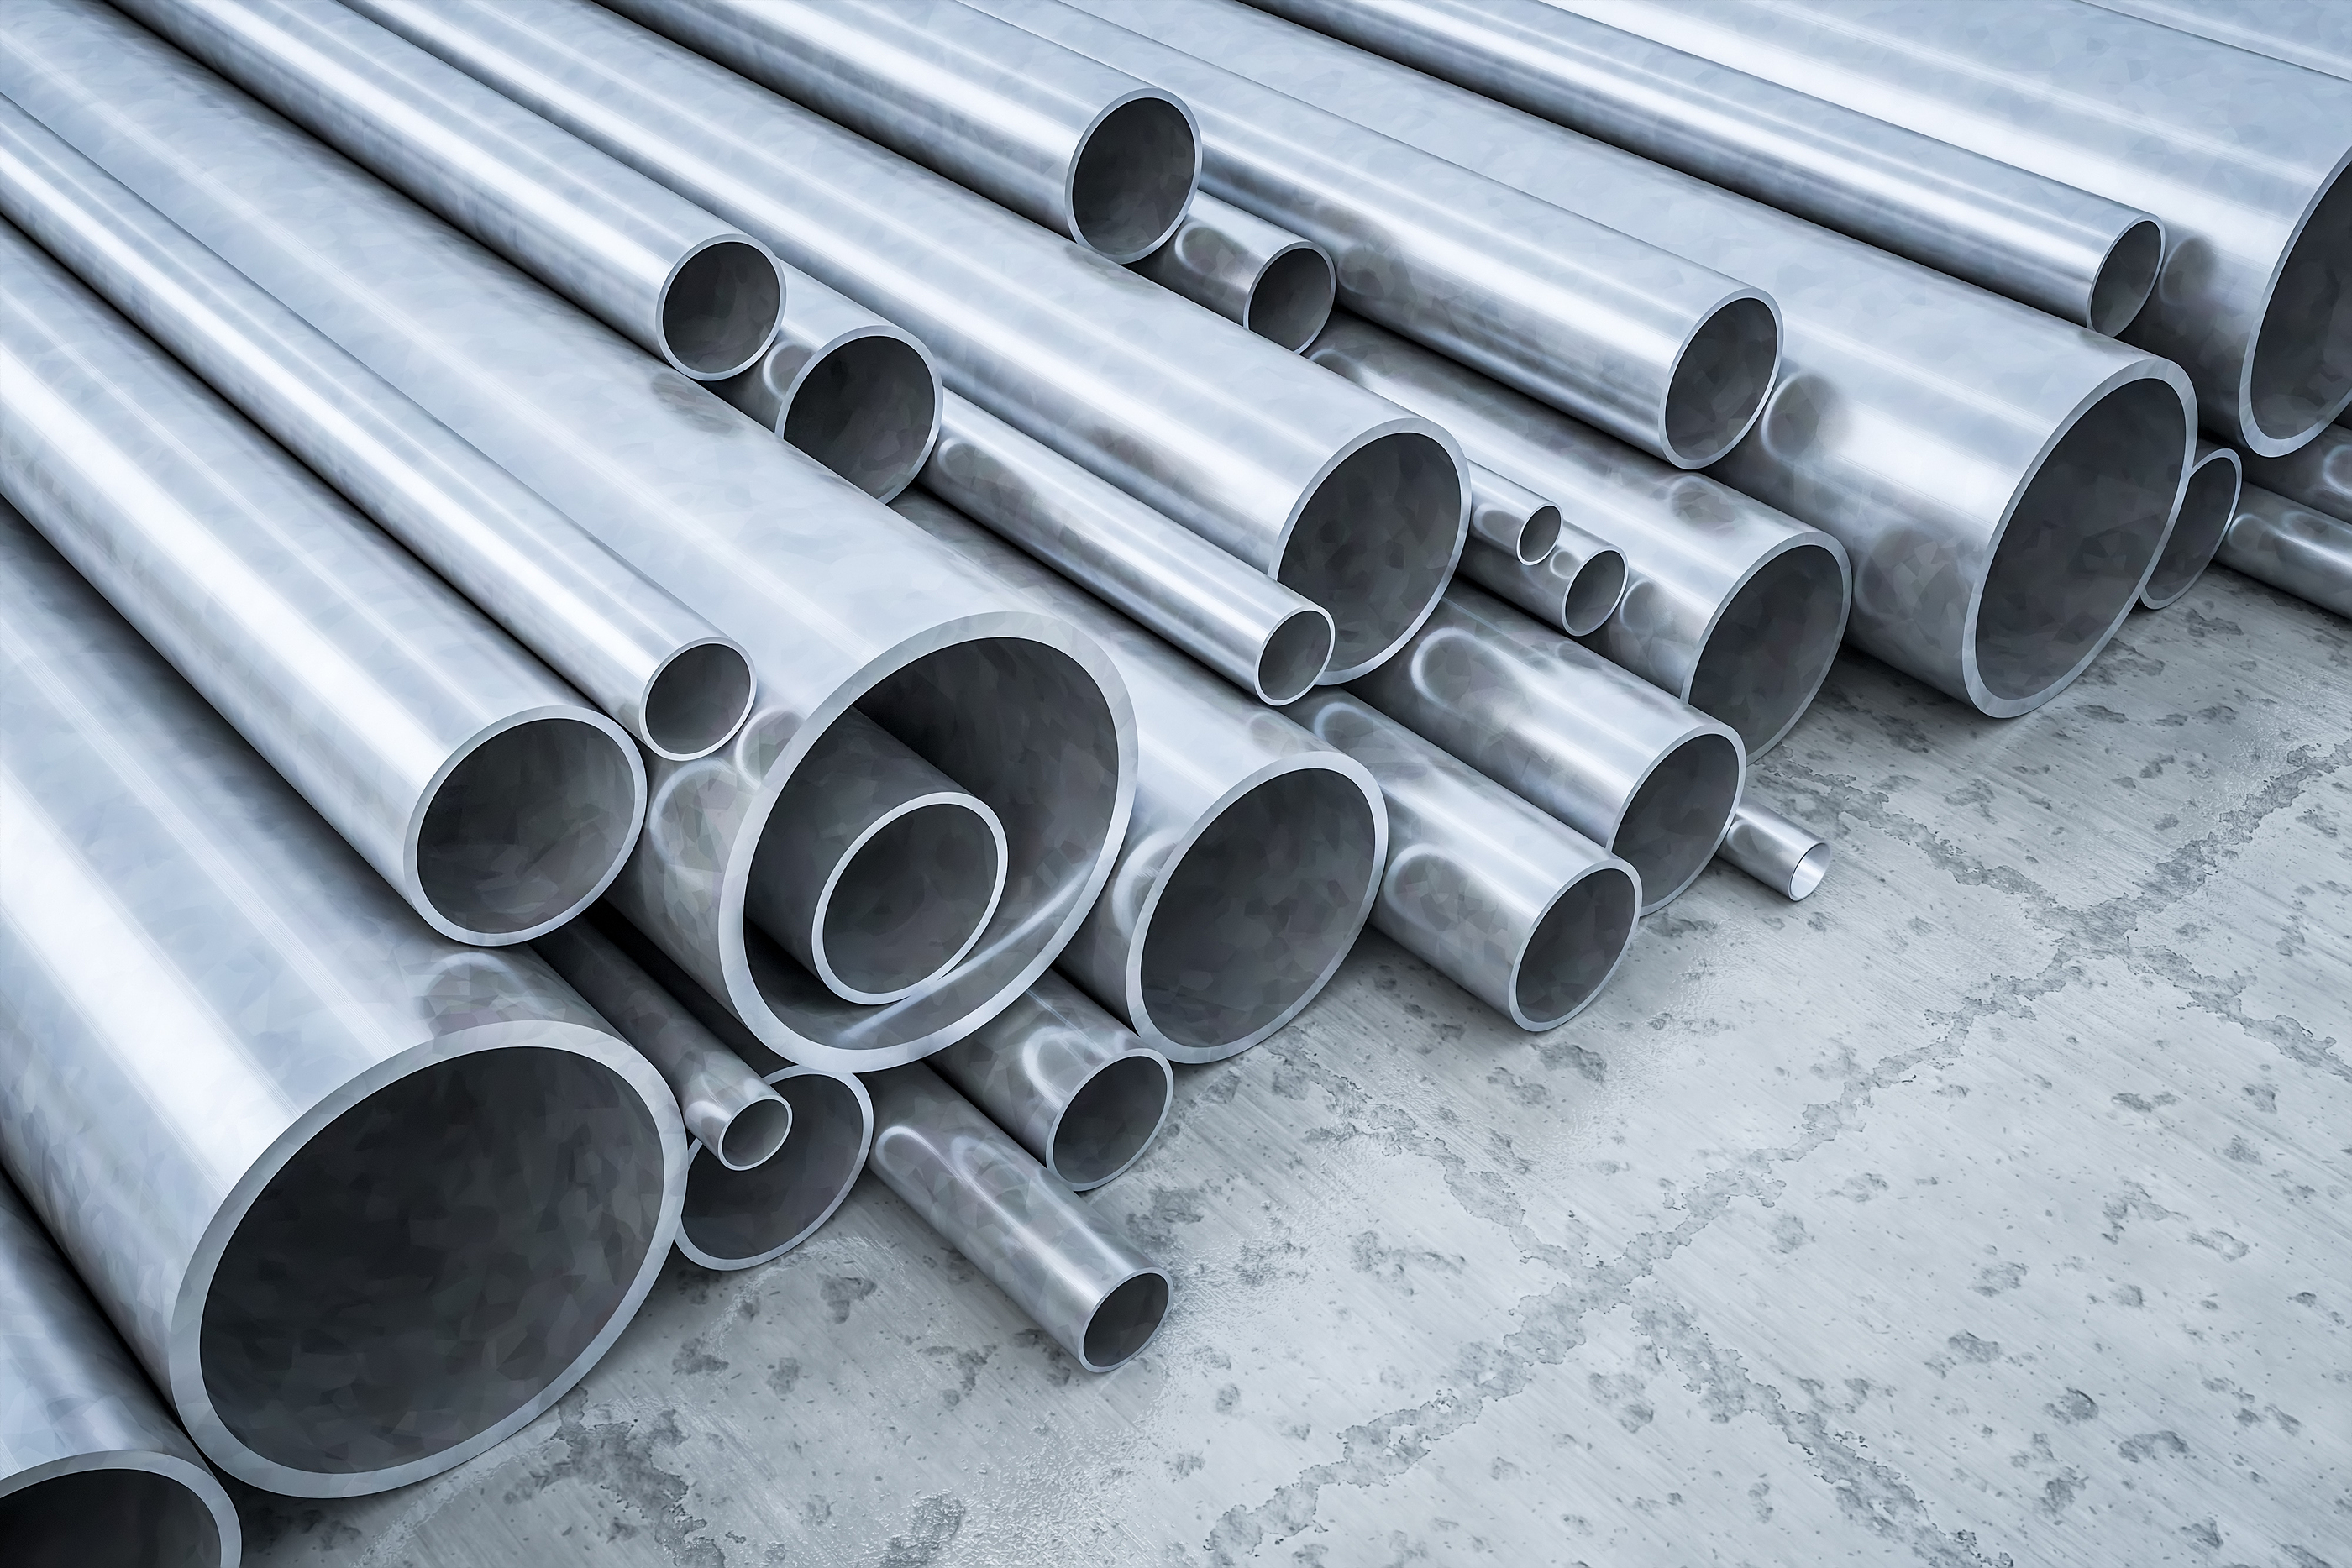 An image of some steel pipes in a warehouse.jpg